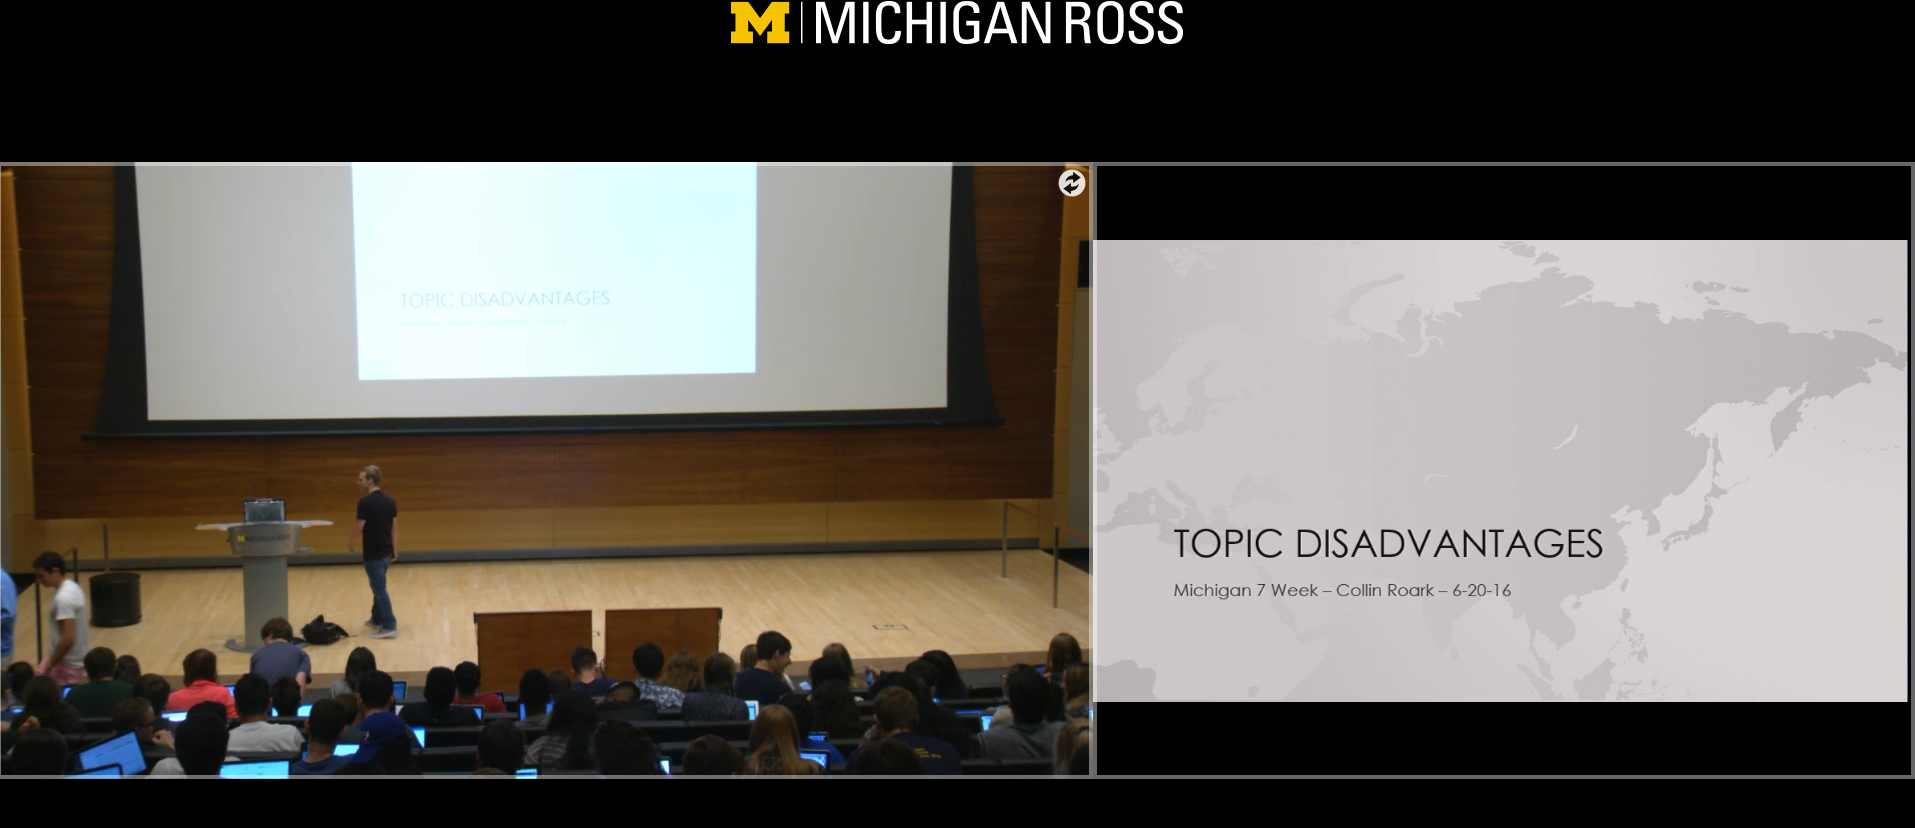 Michigan Camp Lectures 1: Chinese Economy & Disads on the Topic